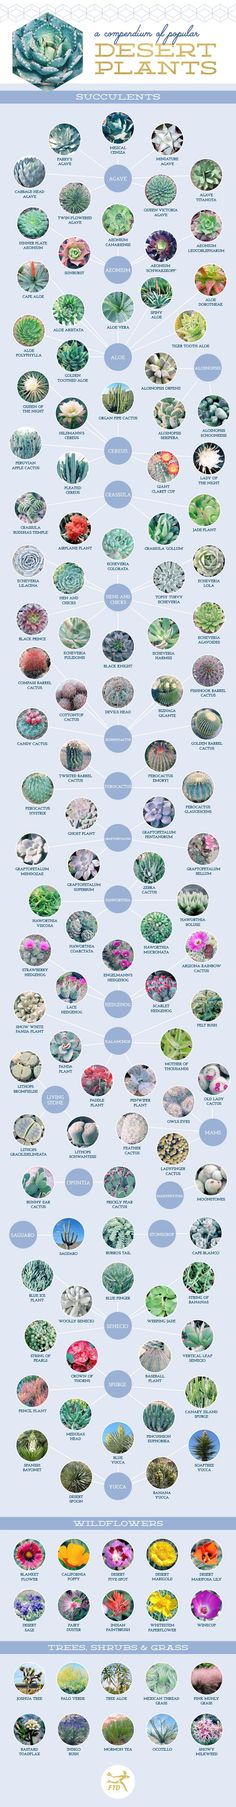 is Easy and Gives you New plants for free Don't know the name of your succulent or cactus plant? This great Compendium of 127 Stunning Desert Plants and Succulents may help. Image shared with permission of . For help on propagating succulents please visit Types Of Succulents, Cacti And Succulents, Planting Succulents, Planting Flowers, Succulent Names, Cactus Planters, Types Of Cactus Plants, Identifying Succulents, Flowering Succulents